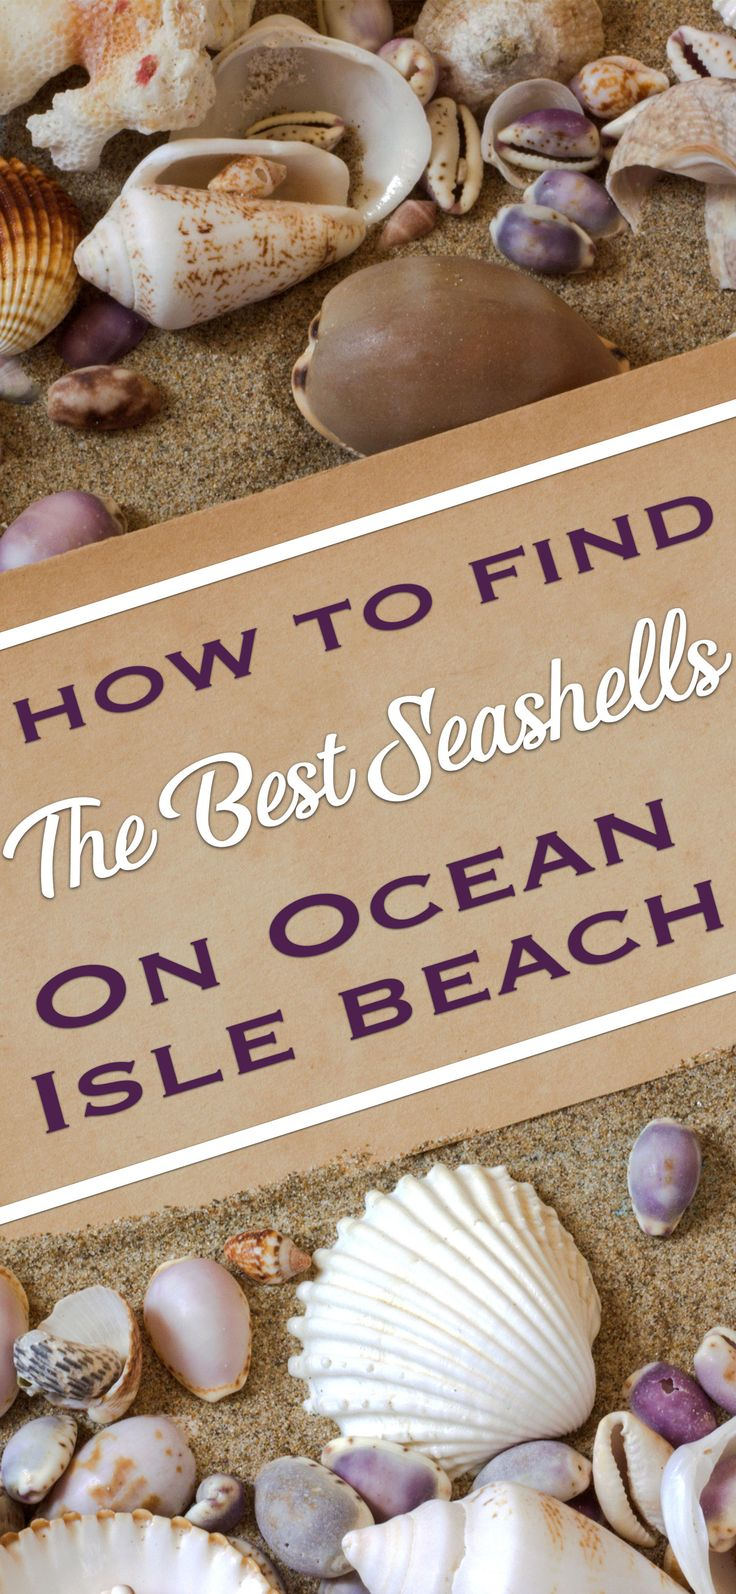 Learn how to score the best seashells on Ocean Isle Beach, and even get a little education on native species. Let's go shelling!